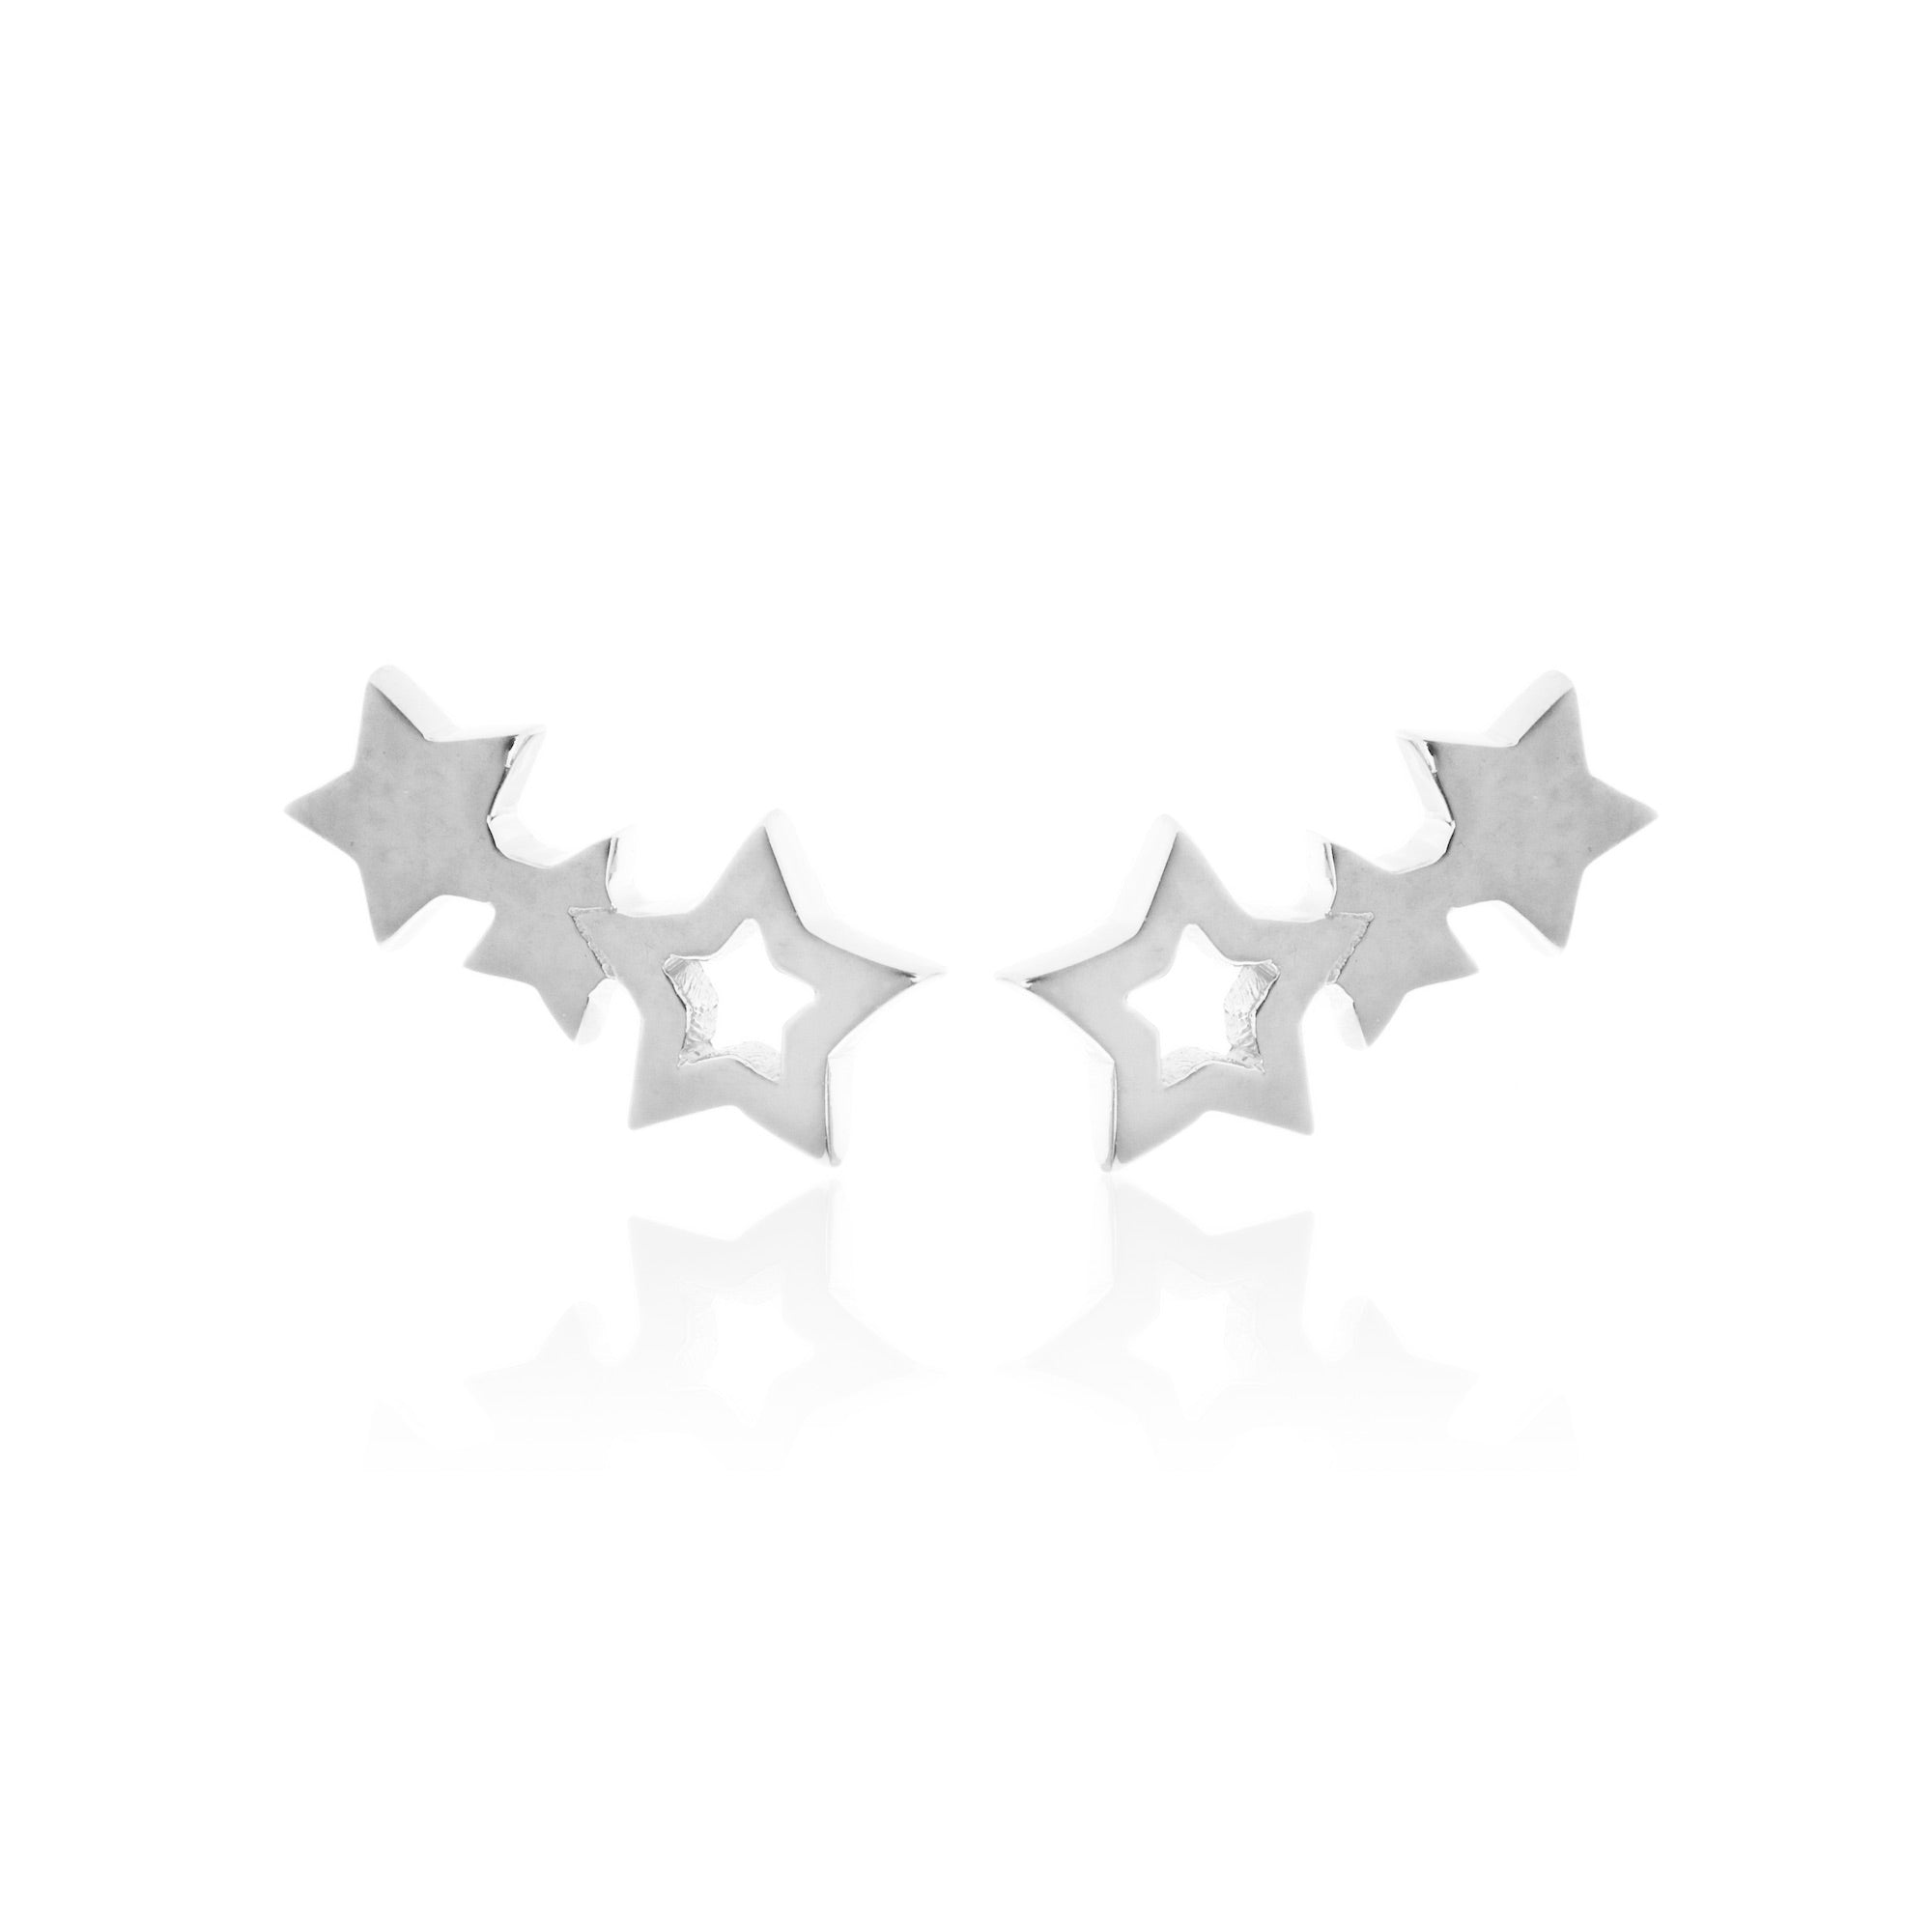 Silk & Steel Jewellery Superfine Star Climber Silver earrings